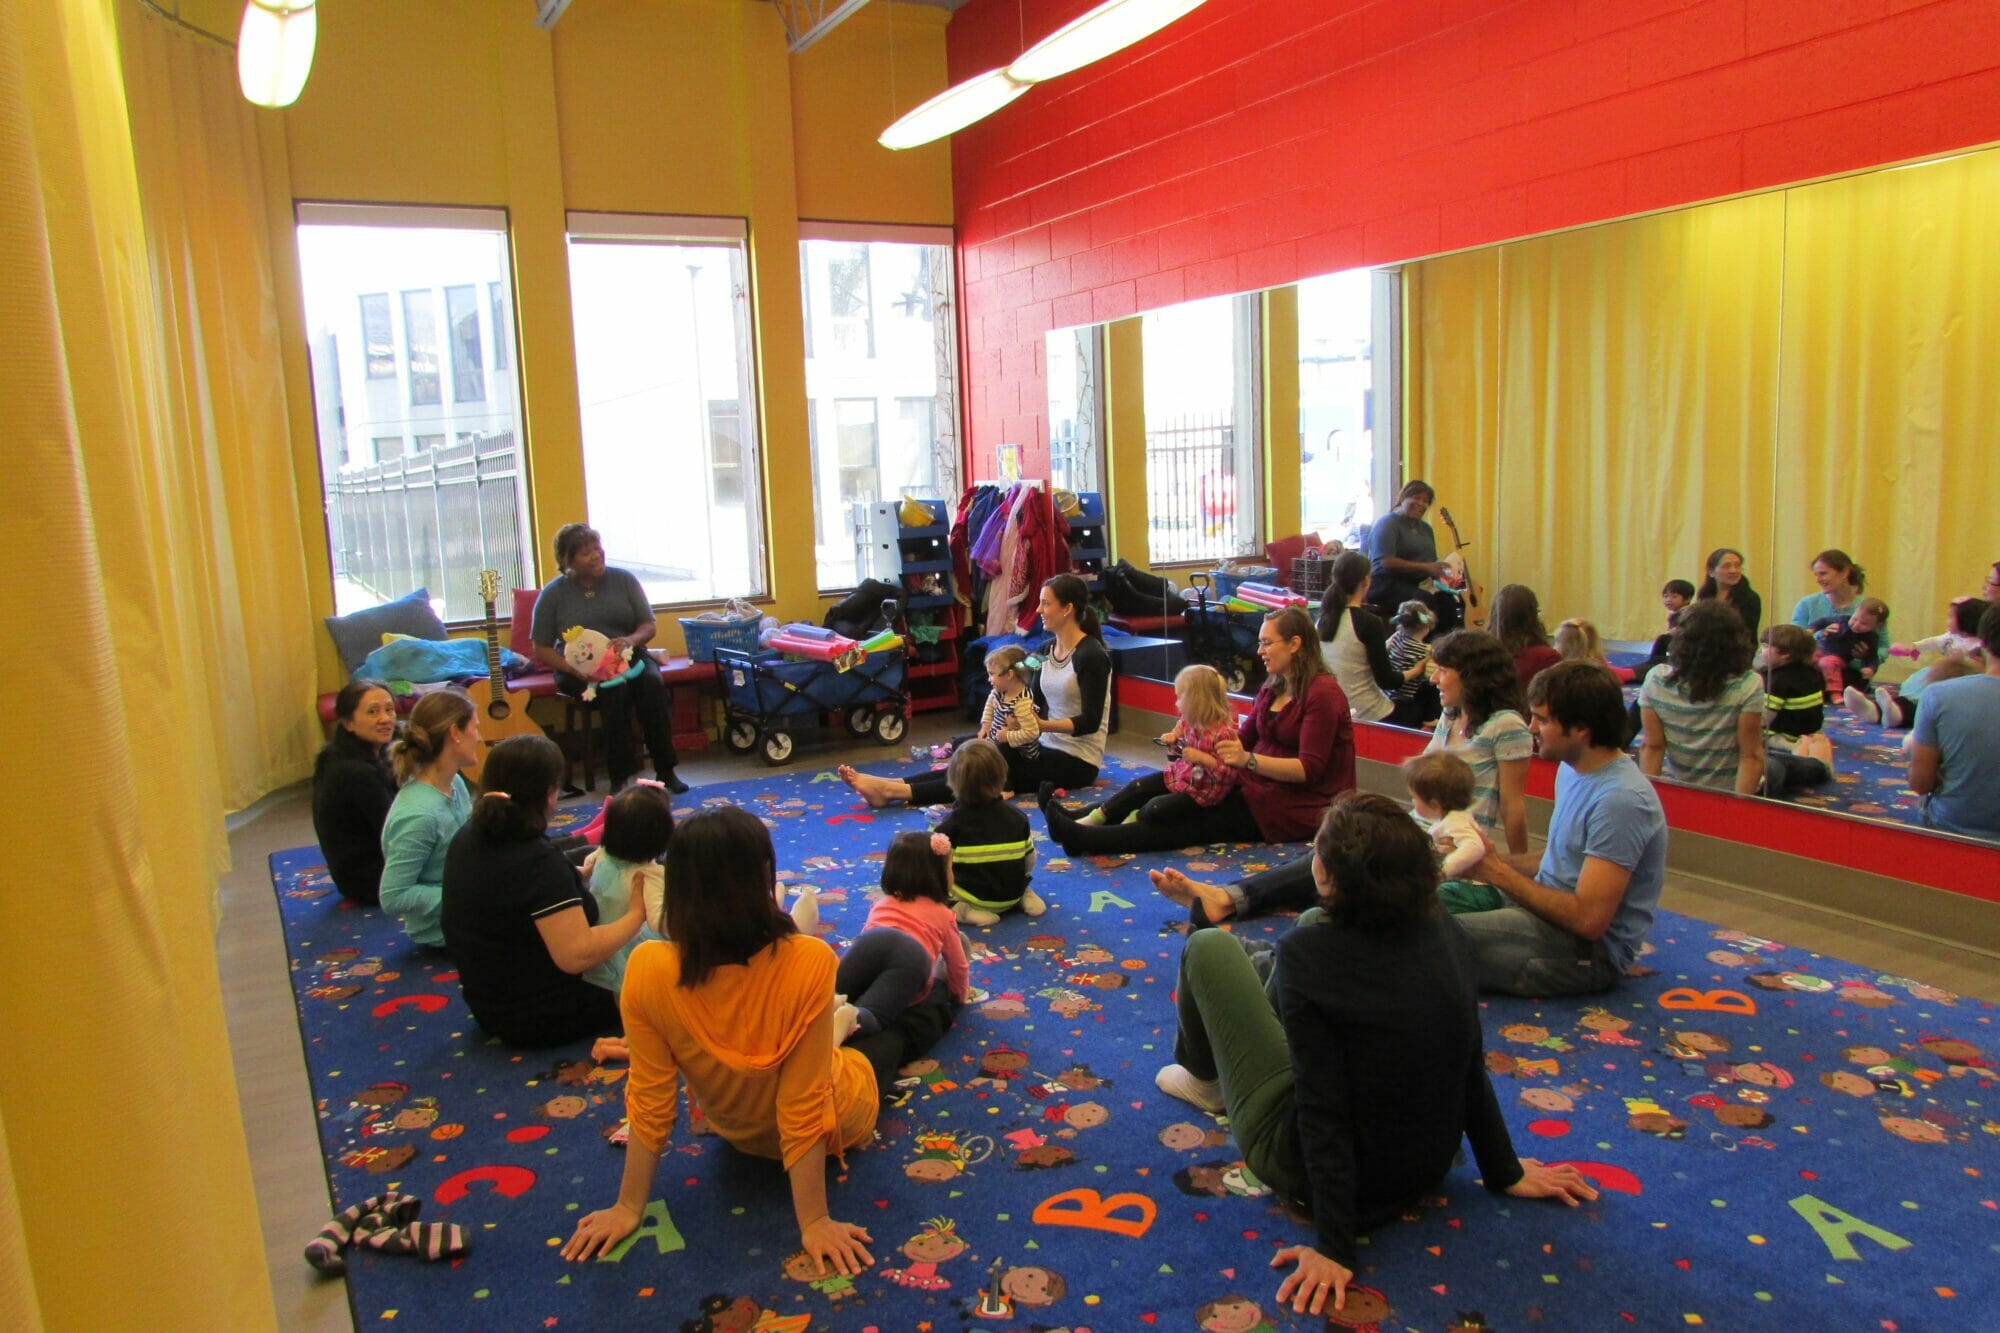 People sit in a circle with their children for an activity.